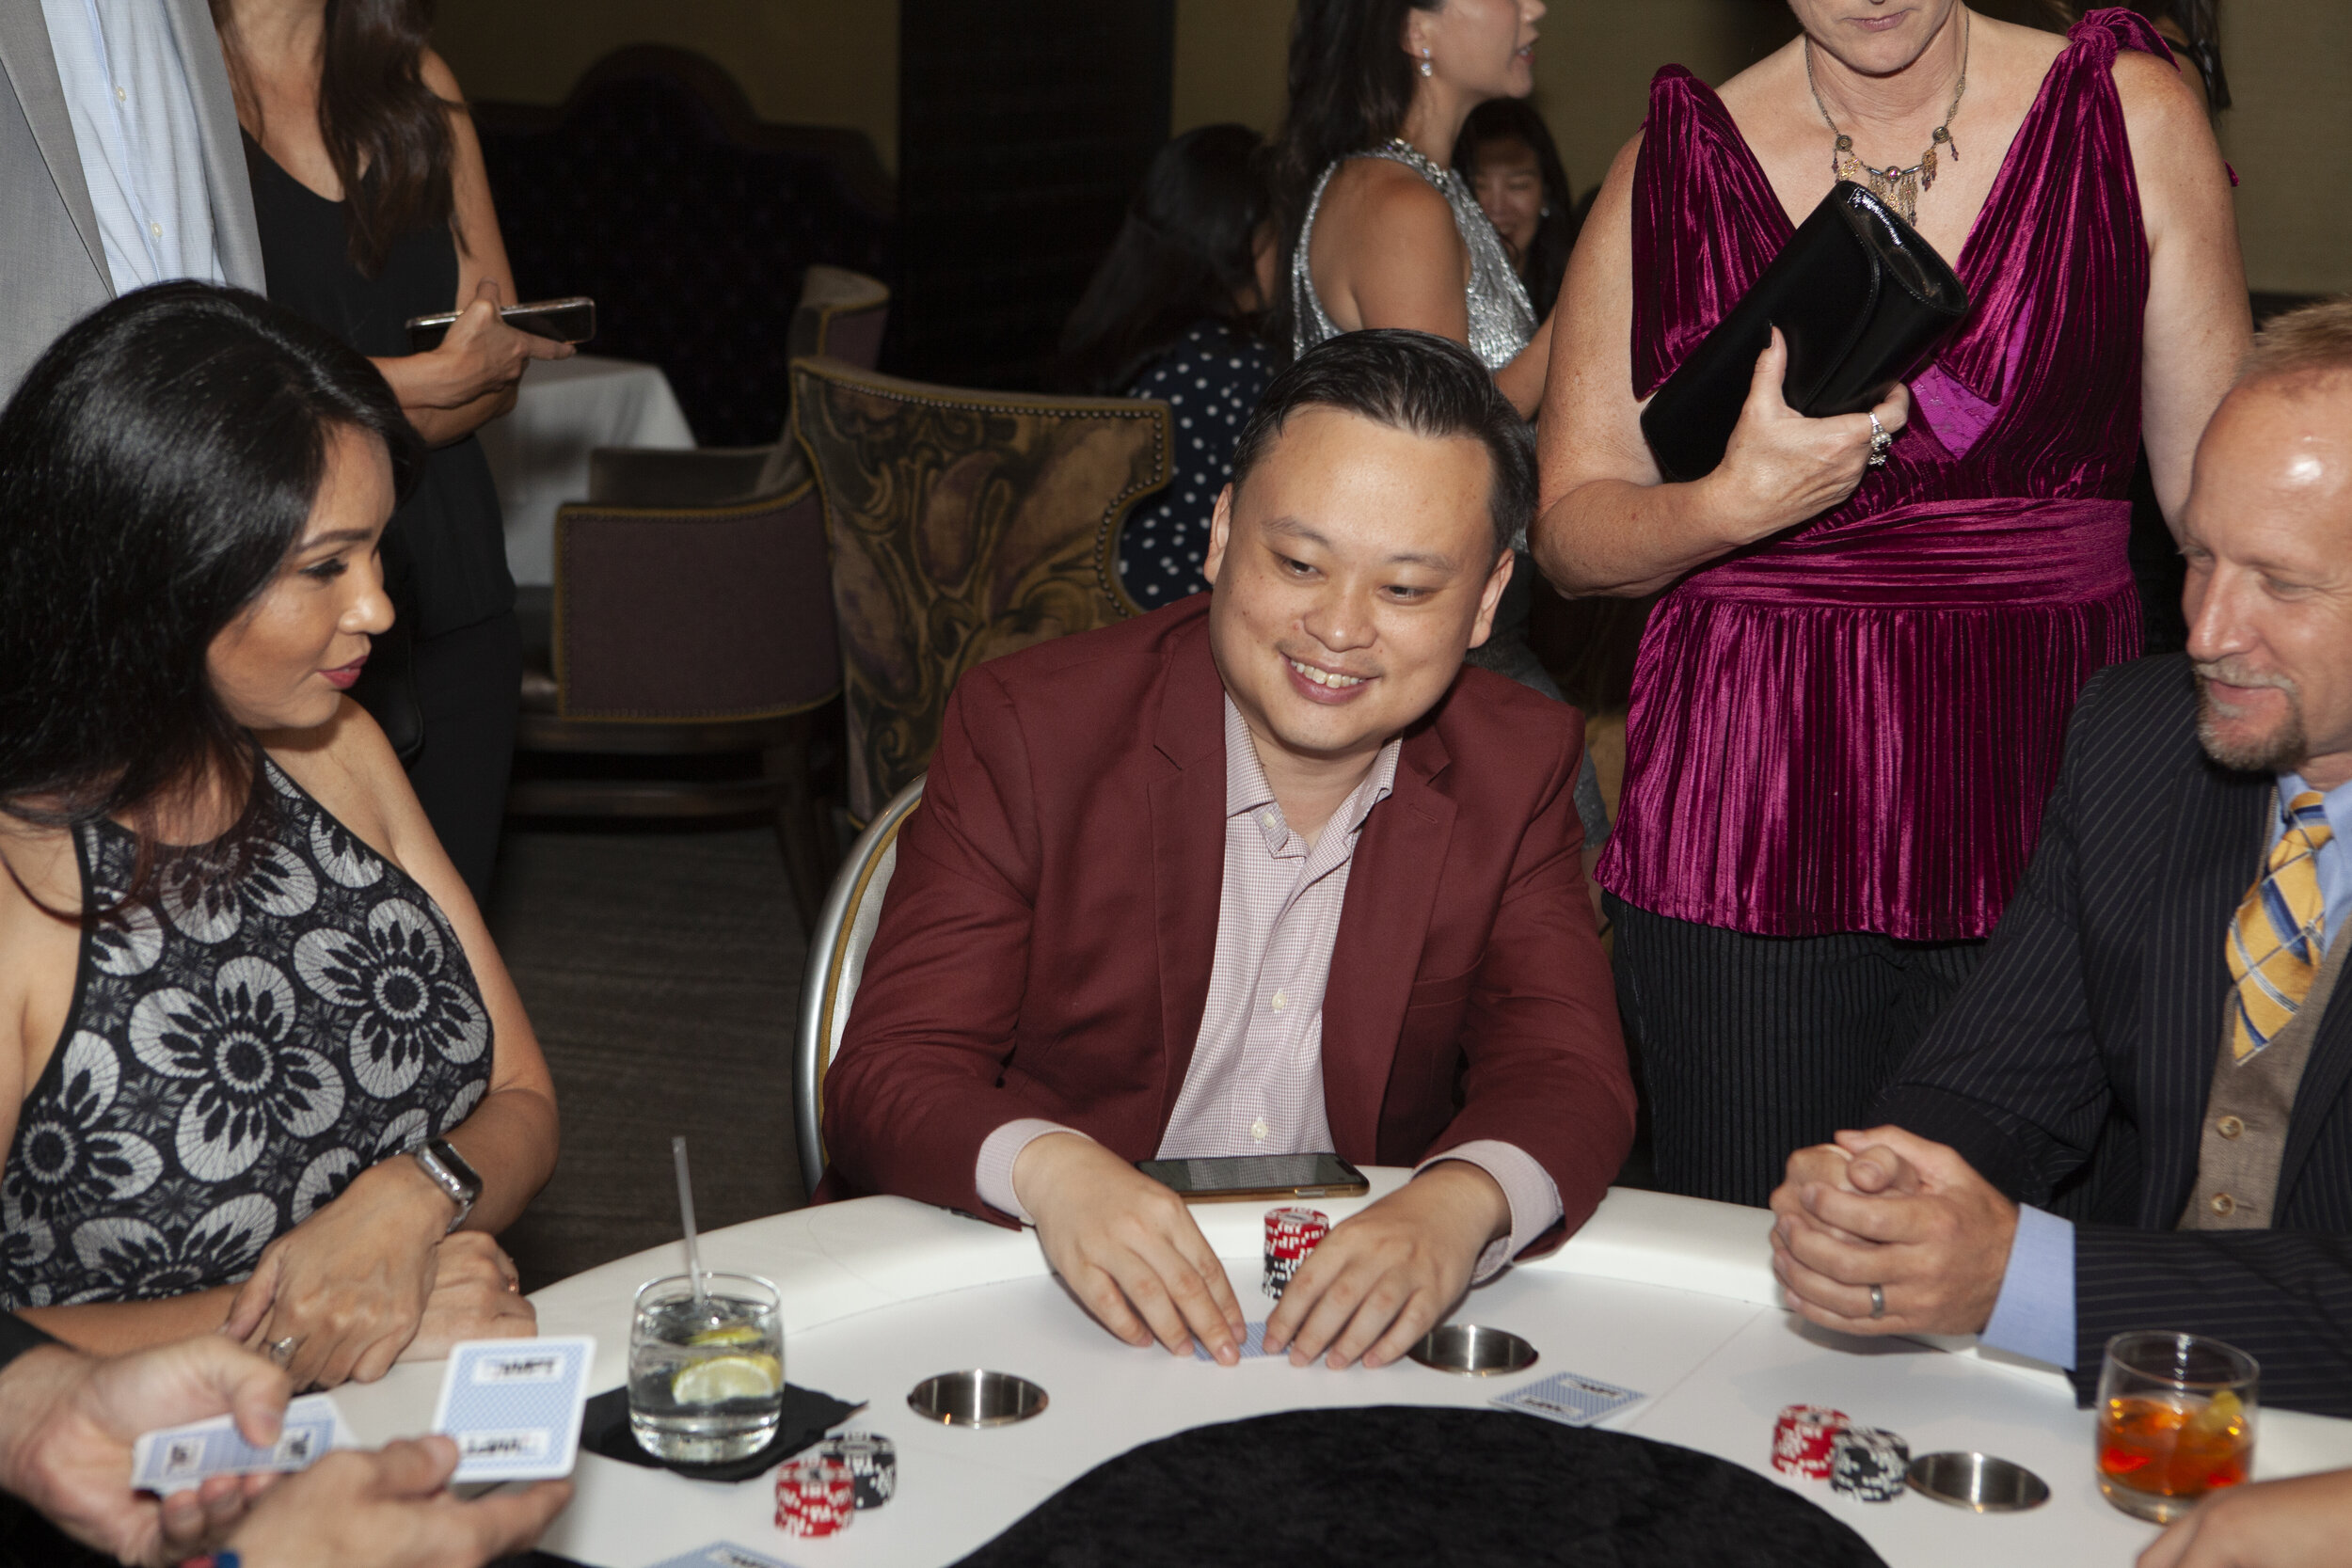 American Idol's William Hung plays poker at the AAPI Summer Soiree.